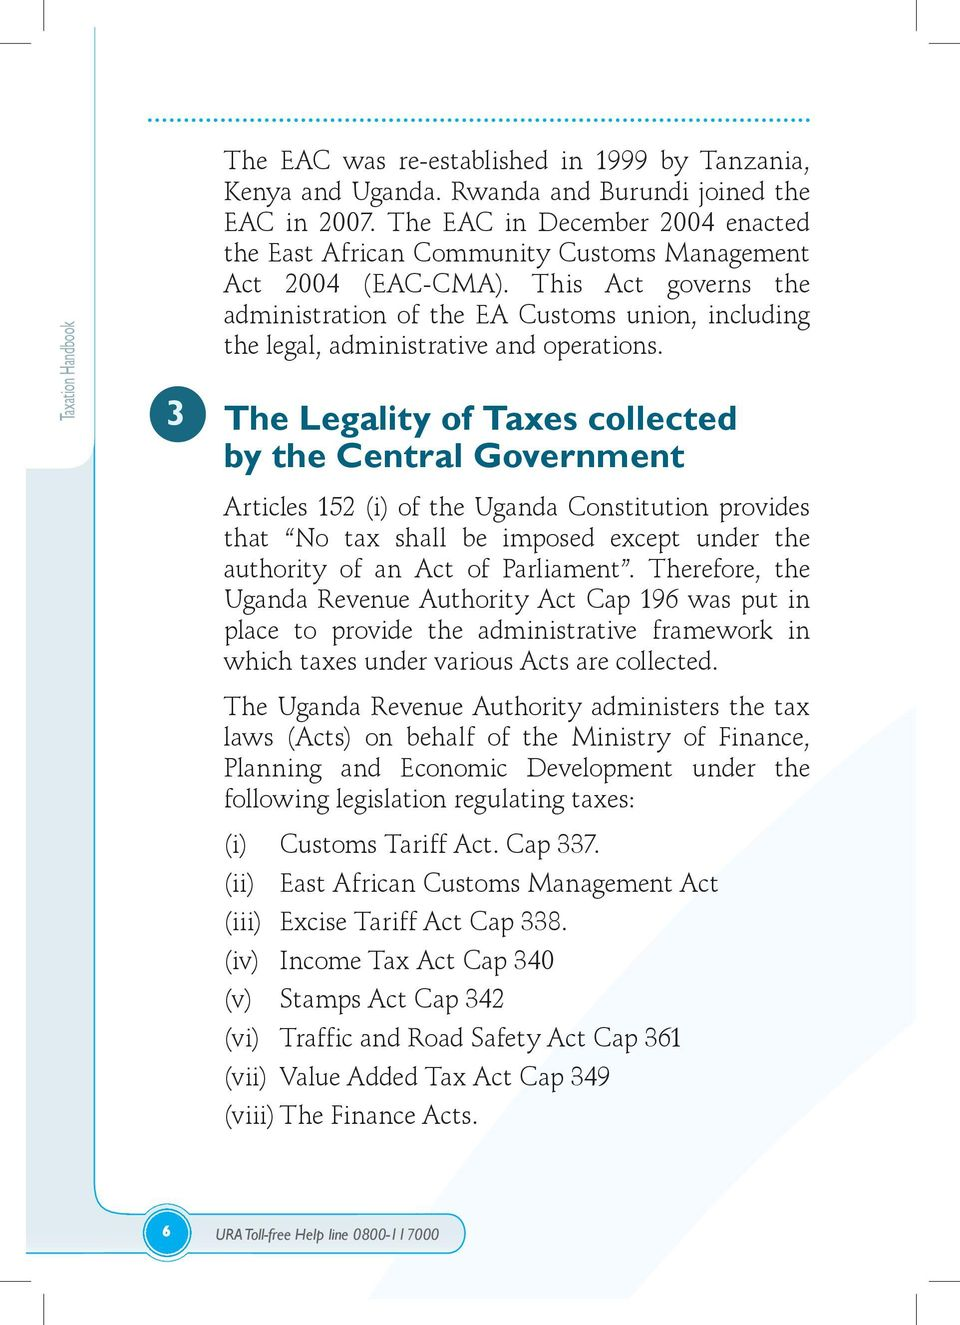 This Act governs the administration of the EA Customs union, including the legal, administrative and operations.